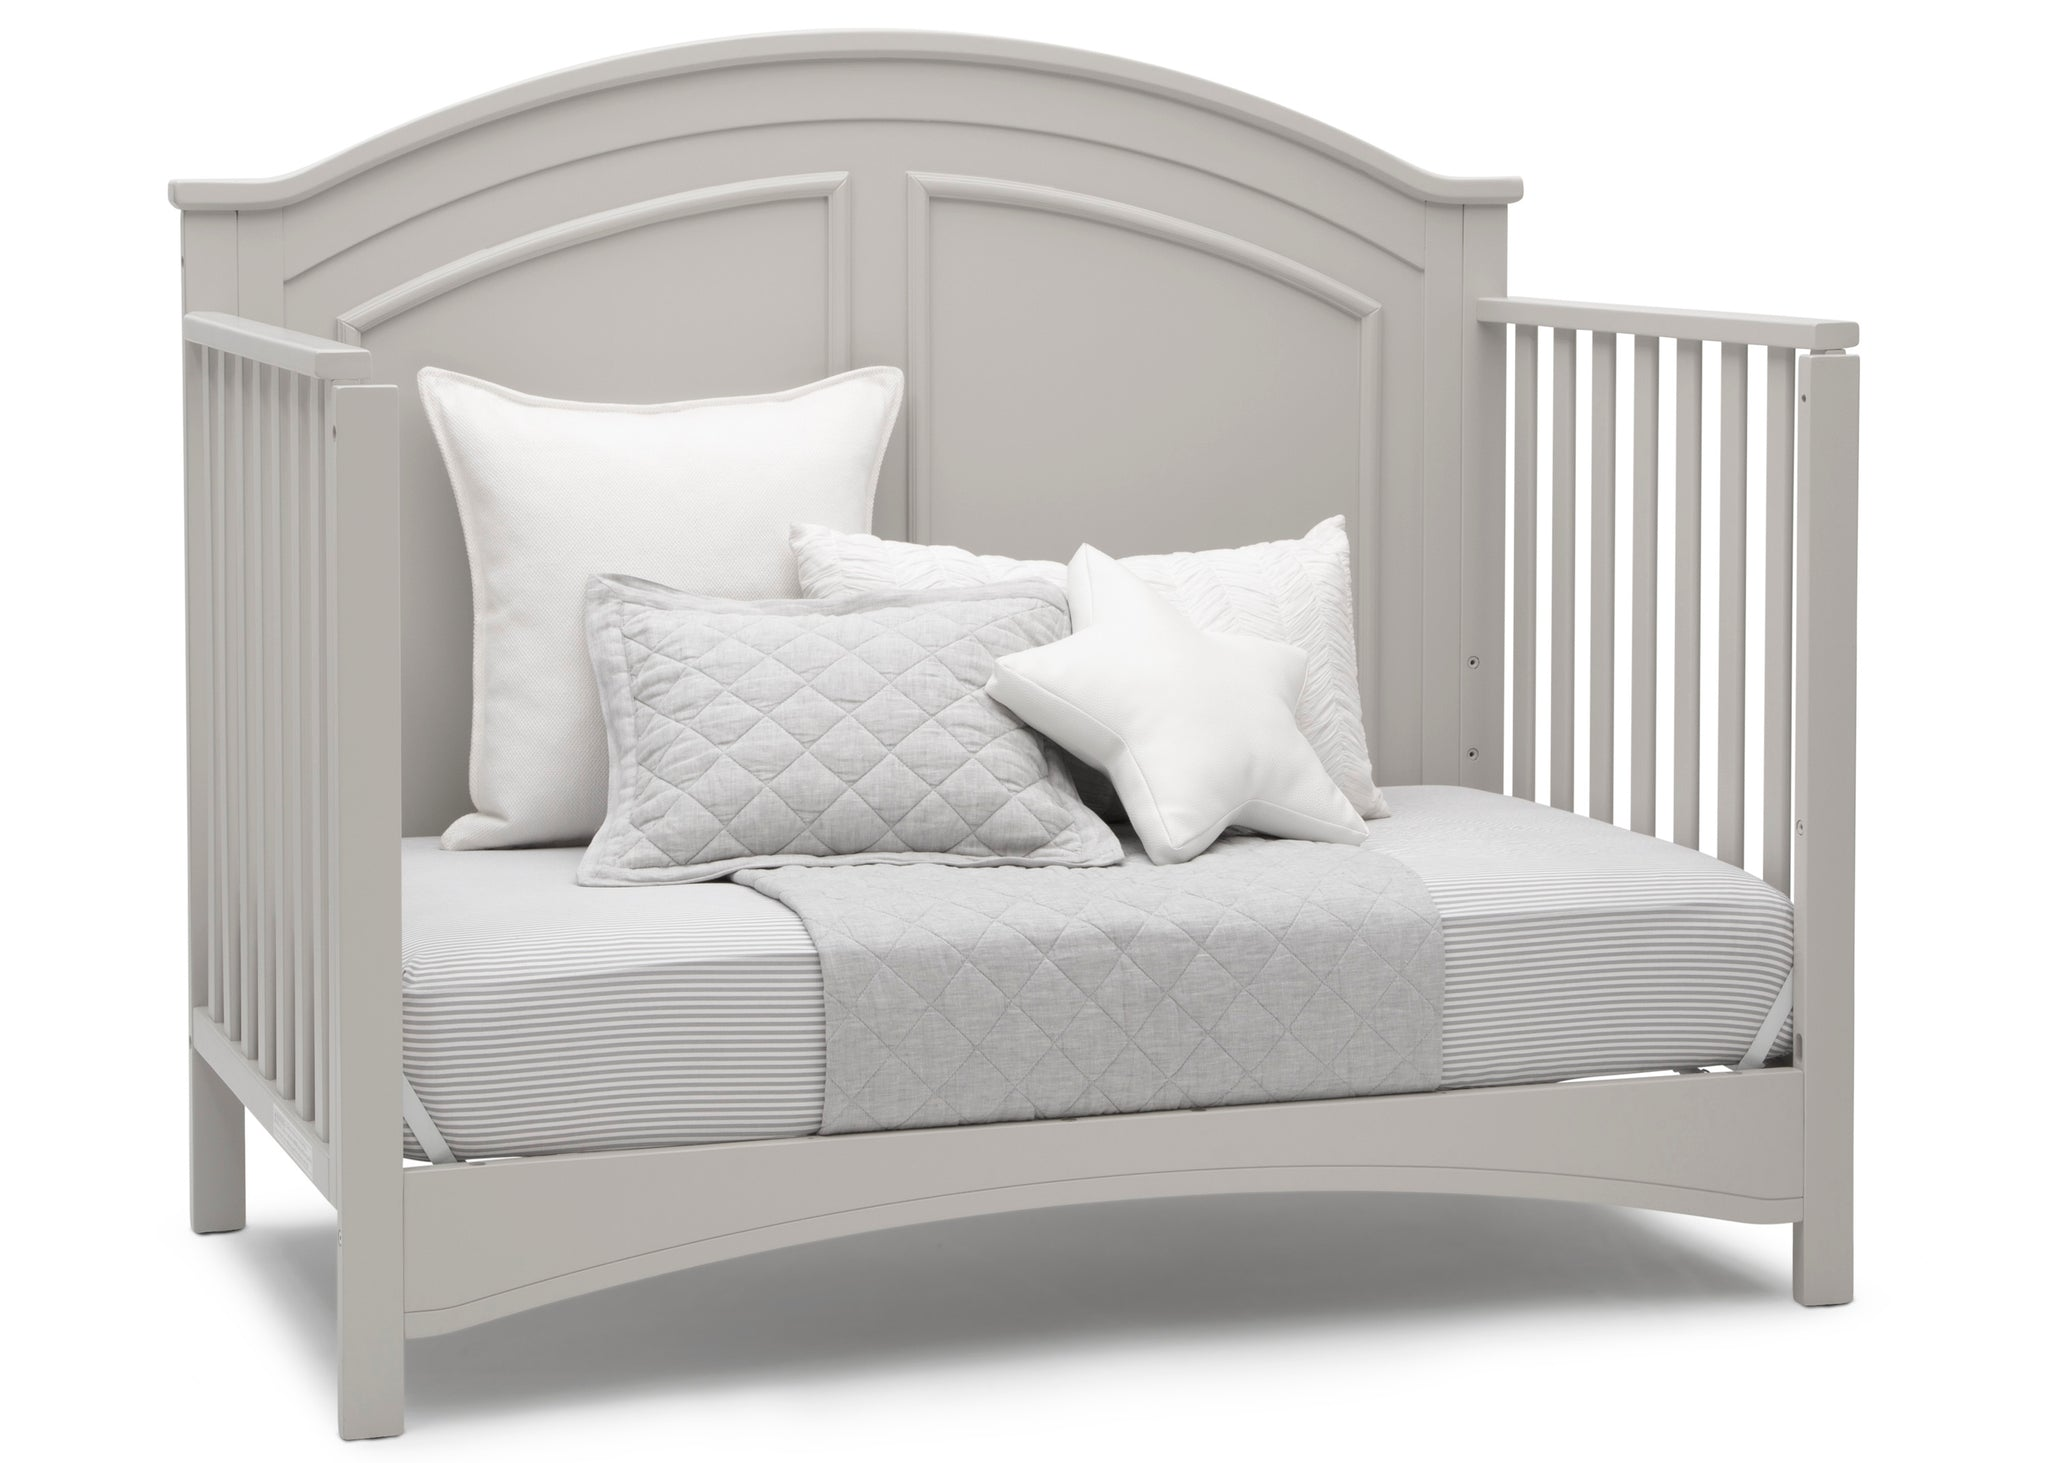 Delta Children Moonstruck Grey (1351) Perry 6-in-1 Convertible Crib, Right Day Bed Silo View